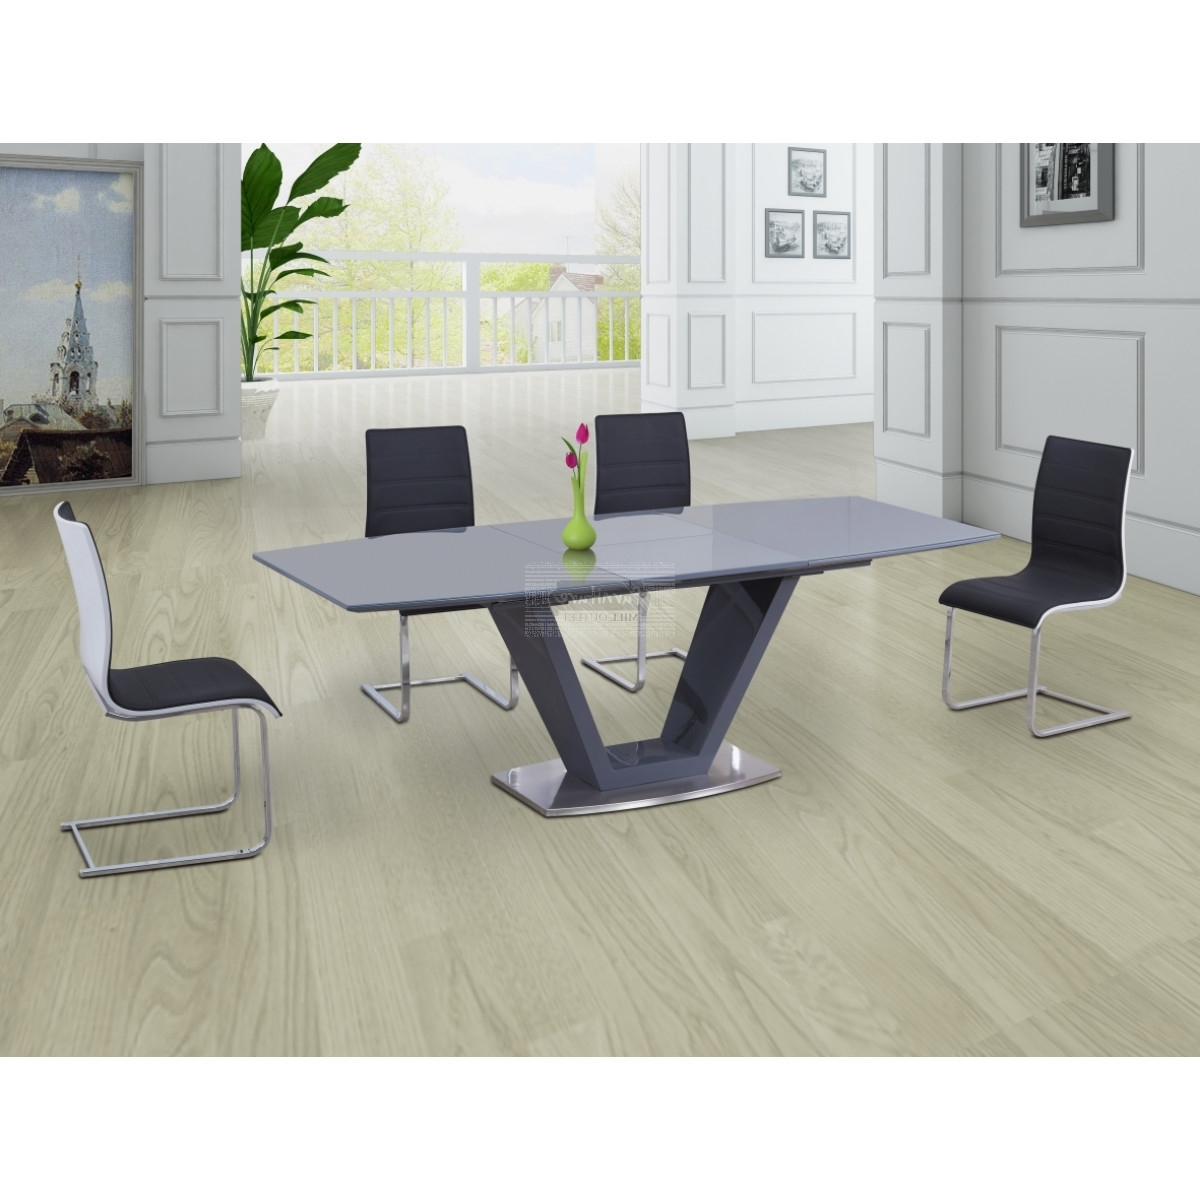 Grey Gloss Dining Tables Within Trendy Lorgato Grey High Gloss Extending Dining Table – 160Cm To 220Cm (View 14 of 25)